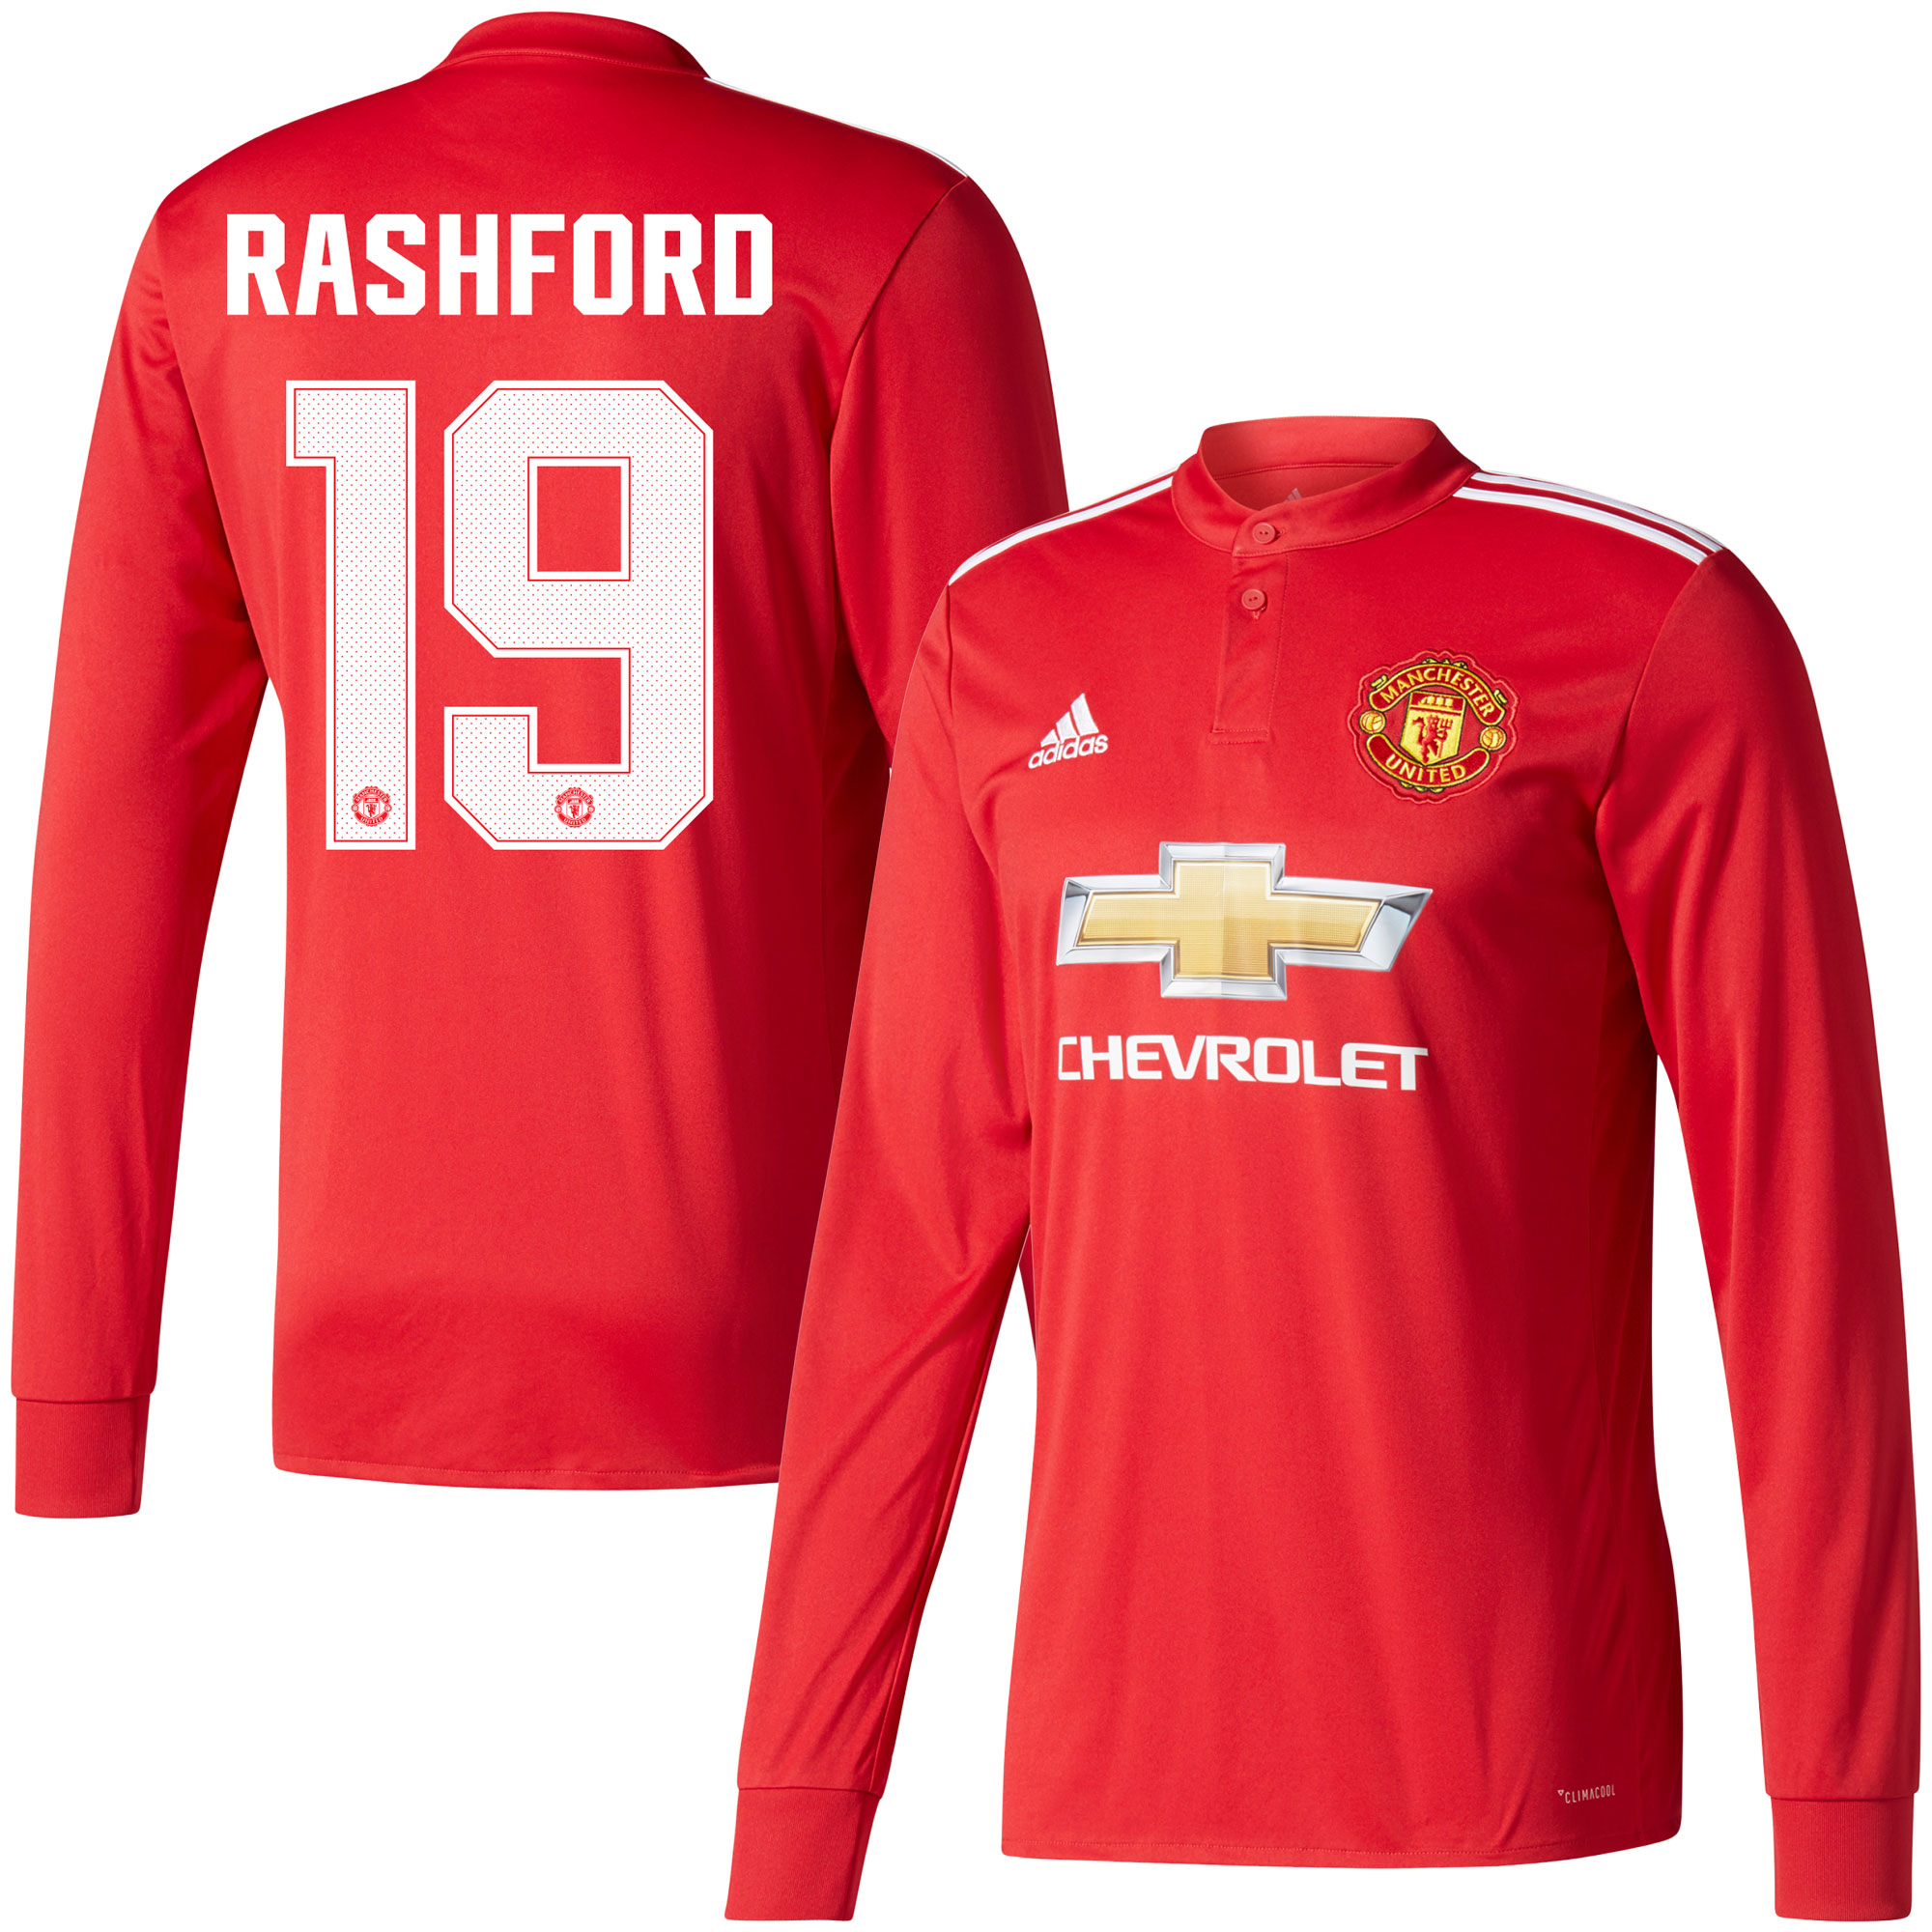 Manchester United Home L/S Rashford Jersey 2017 / 2018 (Cup Style Printing) - 50